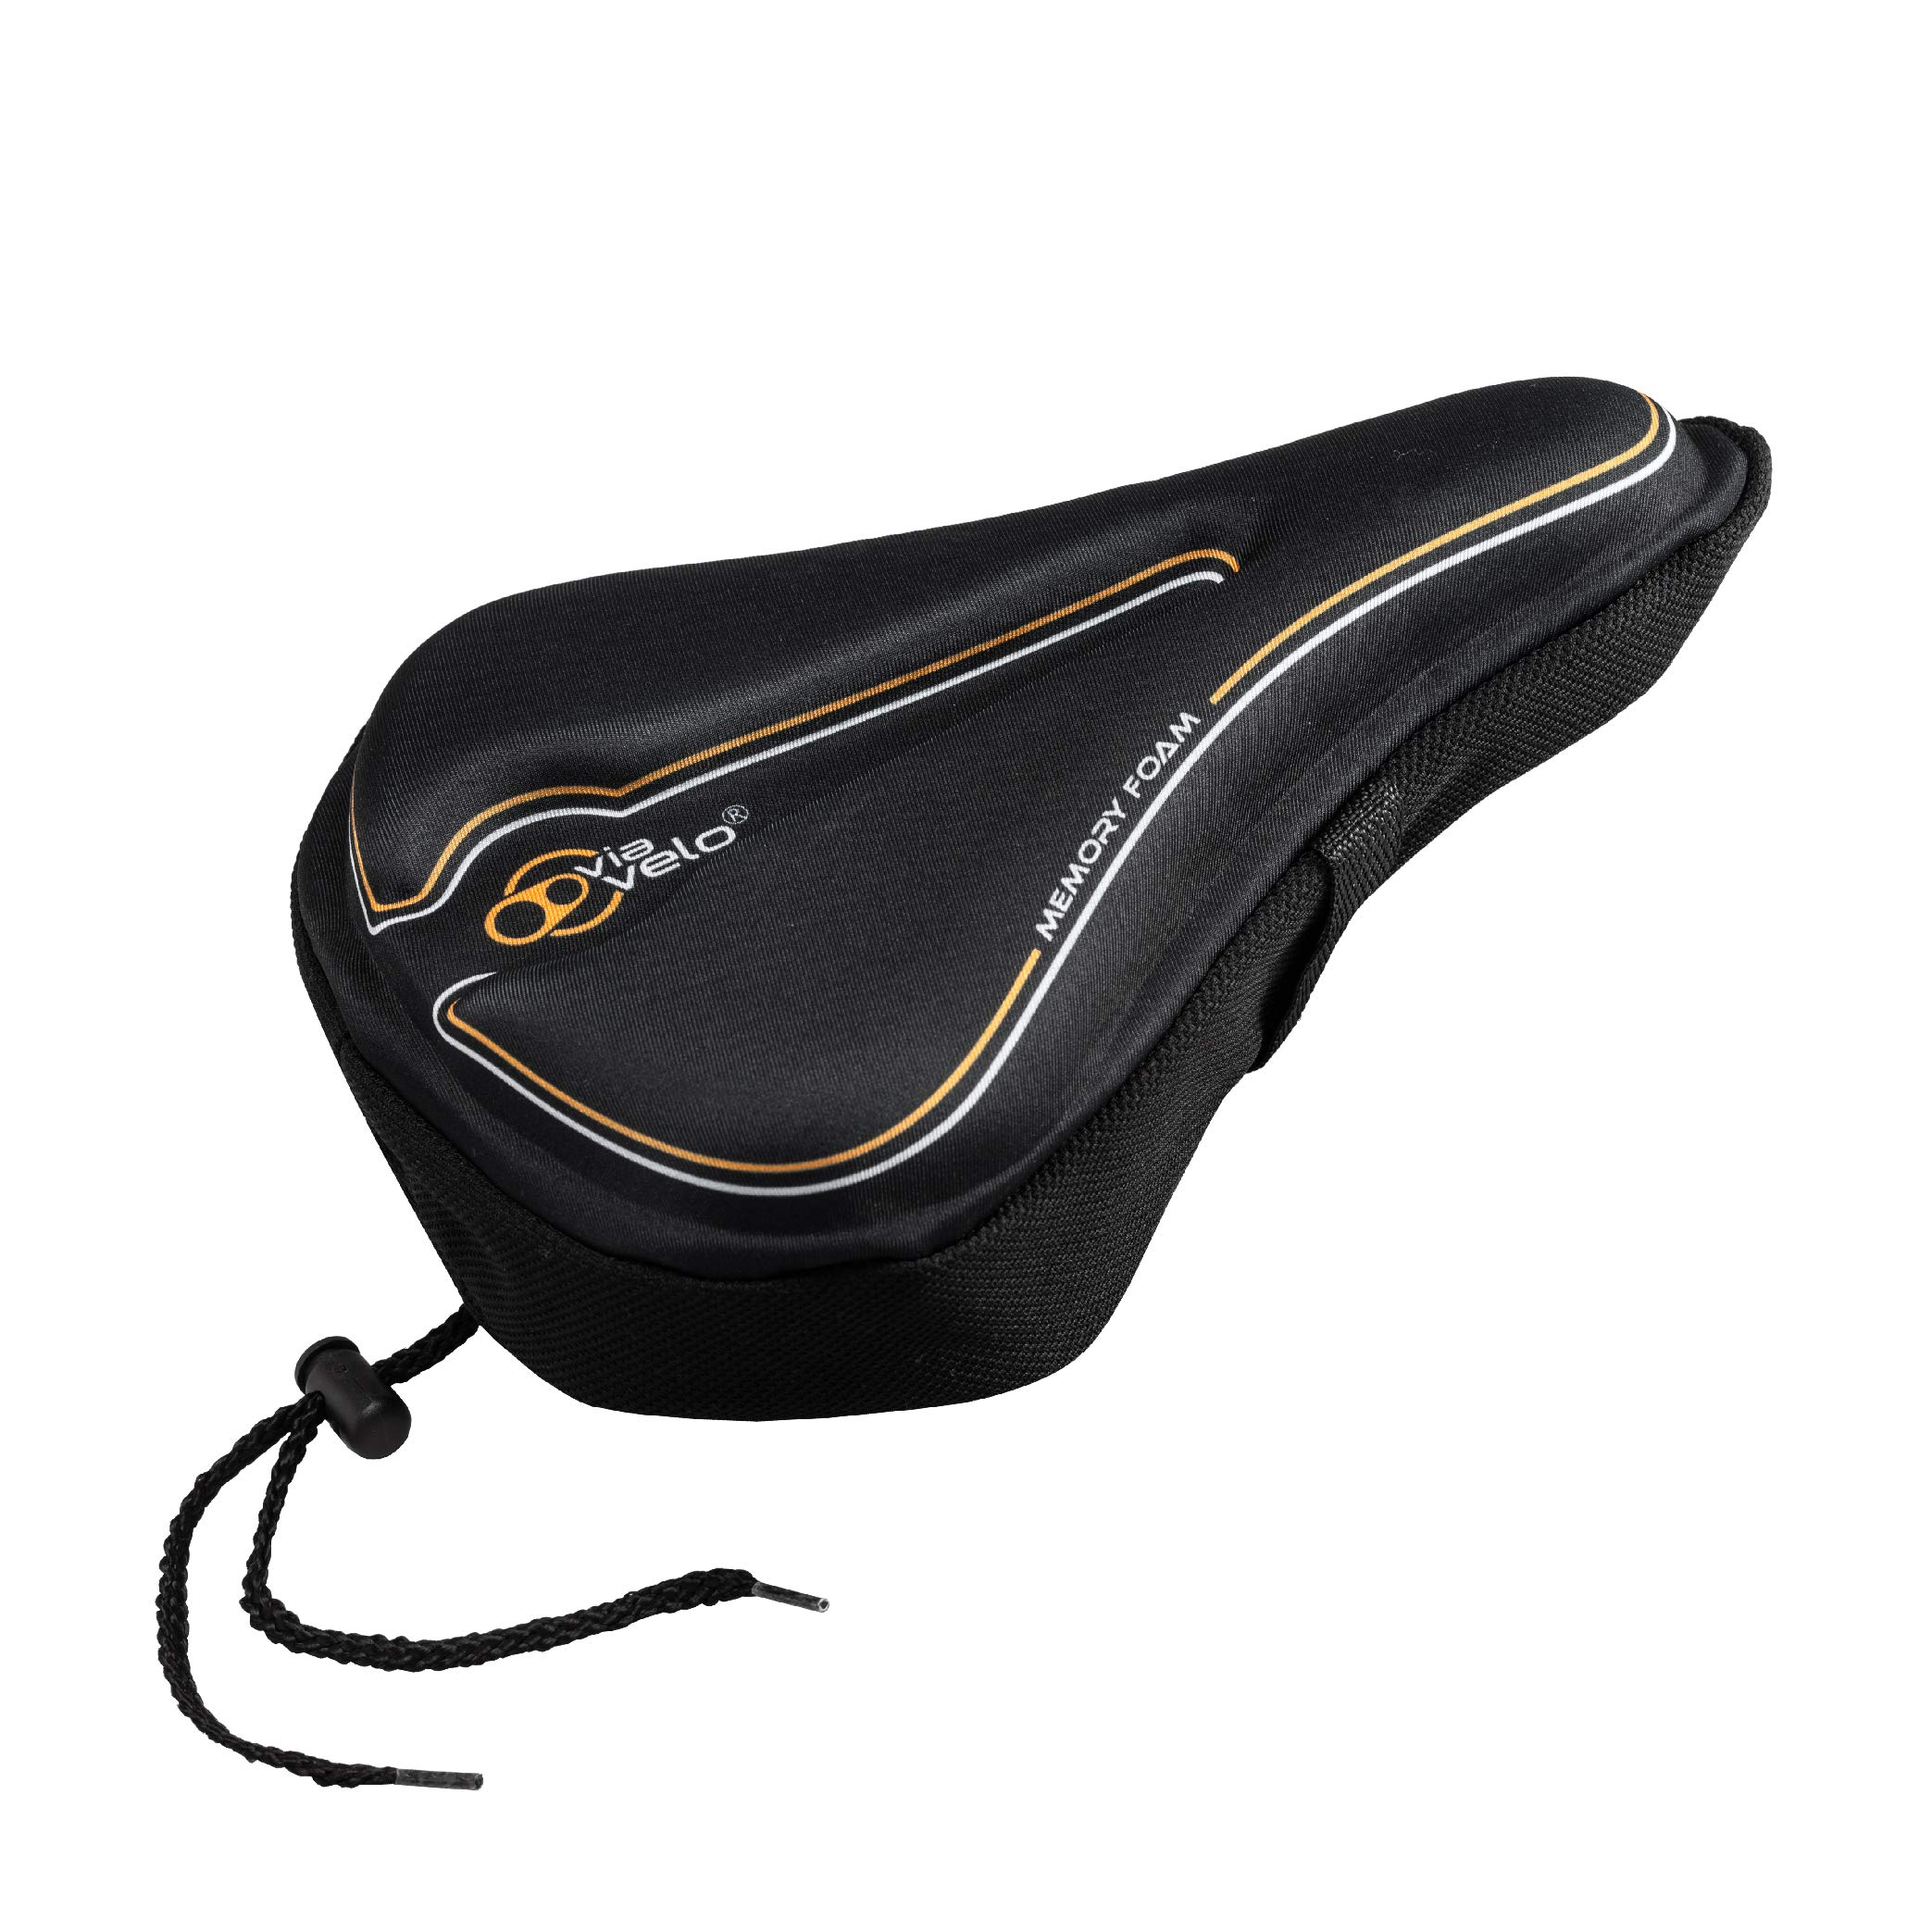 Comfortable -900 miles review- Affordable Bicycle Seat - Easily the Best of the Five or Six I've Tried!